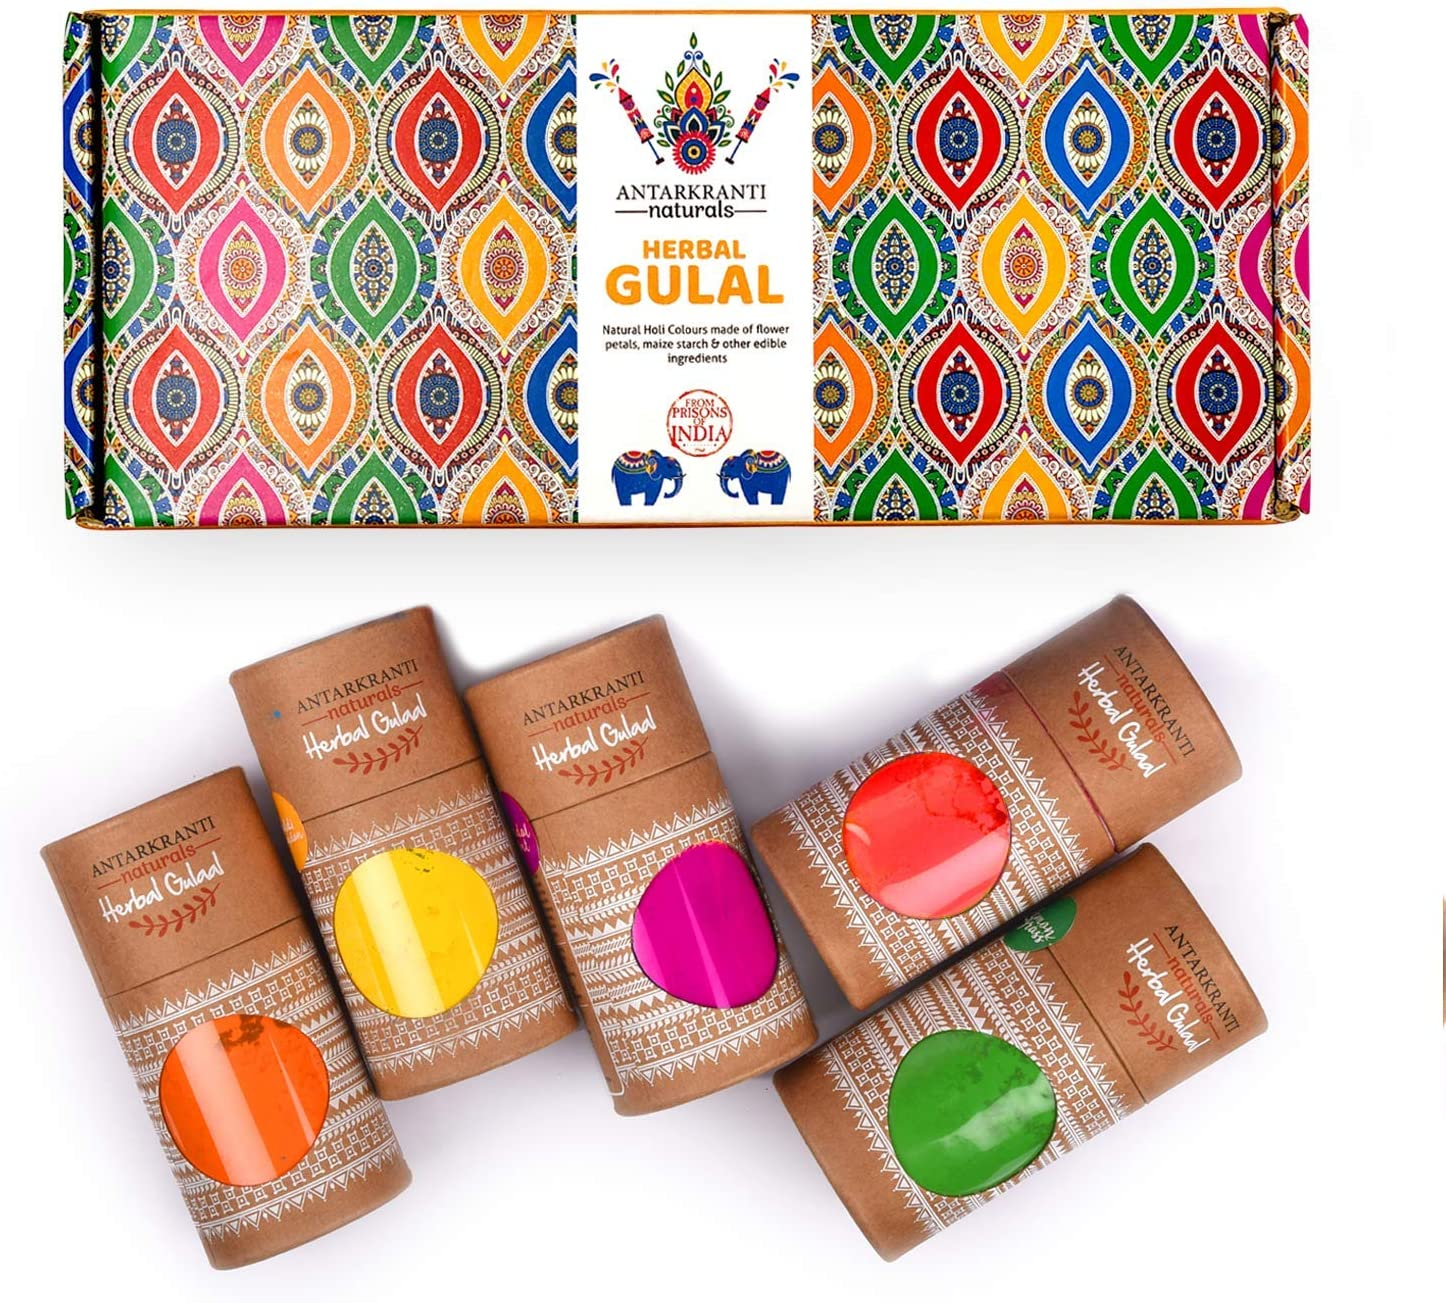 Naturals Tesu Flower, Rose Petals, Marigold, Sandalwood, Maize Starch, Food Colour, Orange, Yellow, Red, Pink, Blue and Green Hand-Made Herbal Gulal Pack of 5 (100gm x 5)